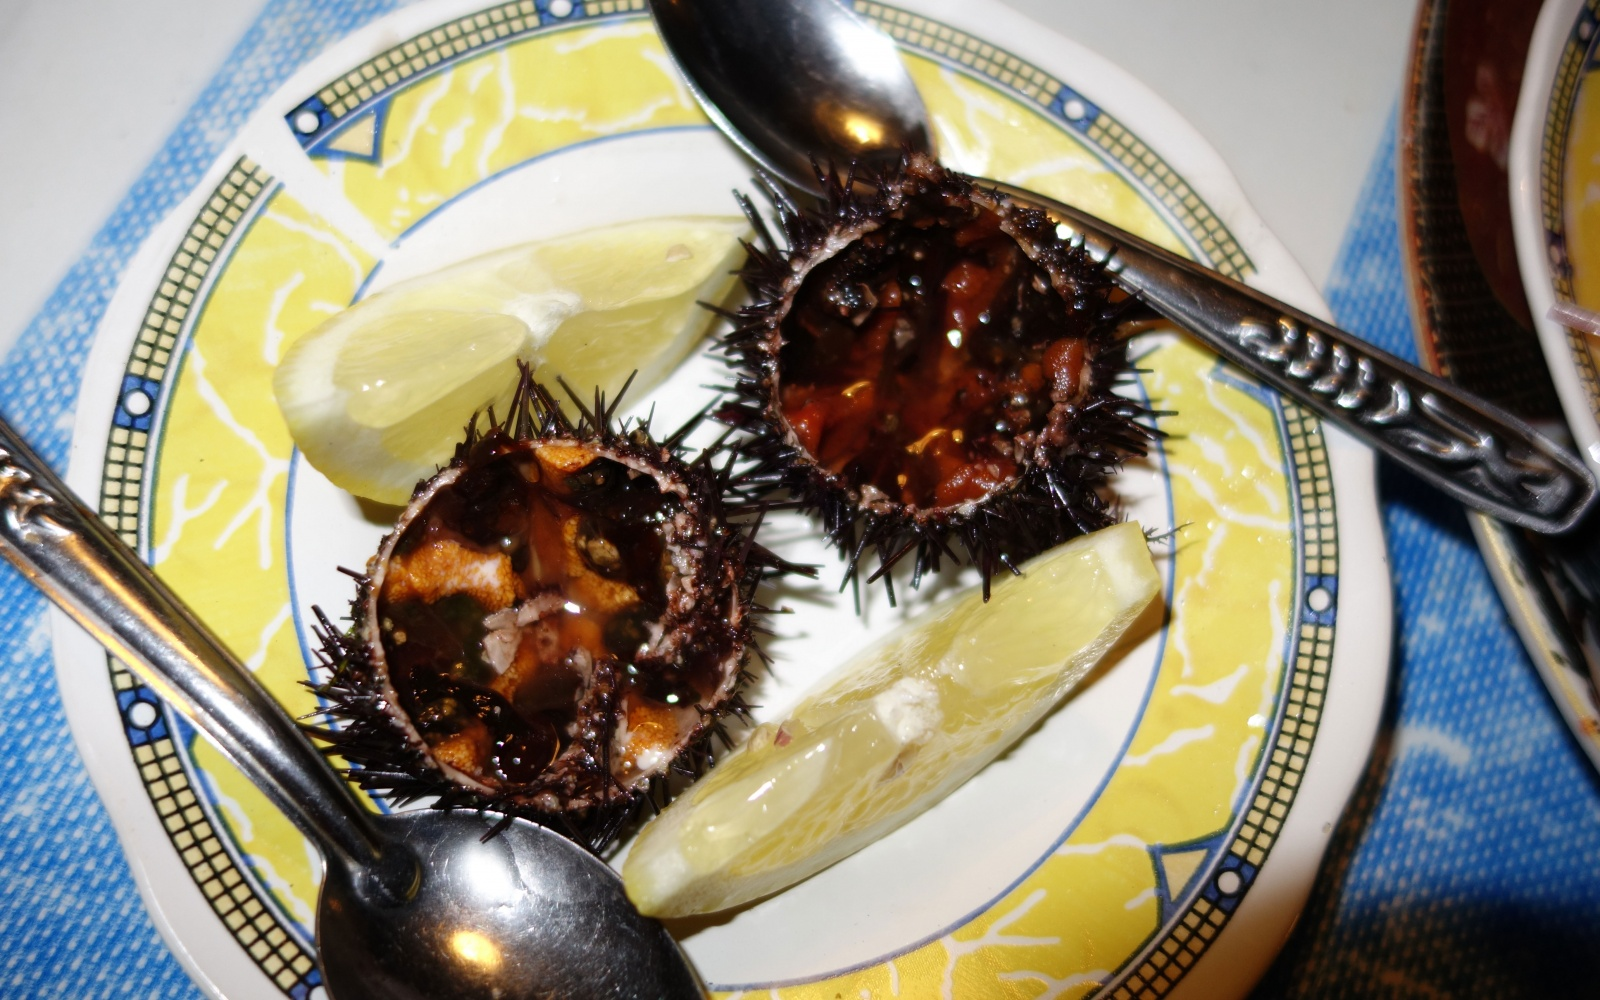 MOROCCO0515-Exotic-Food.jpg